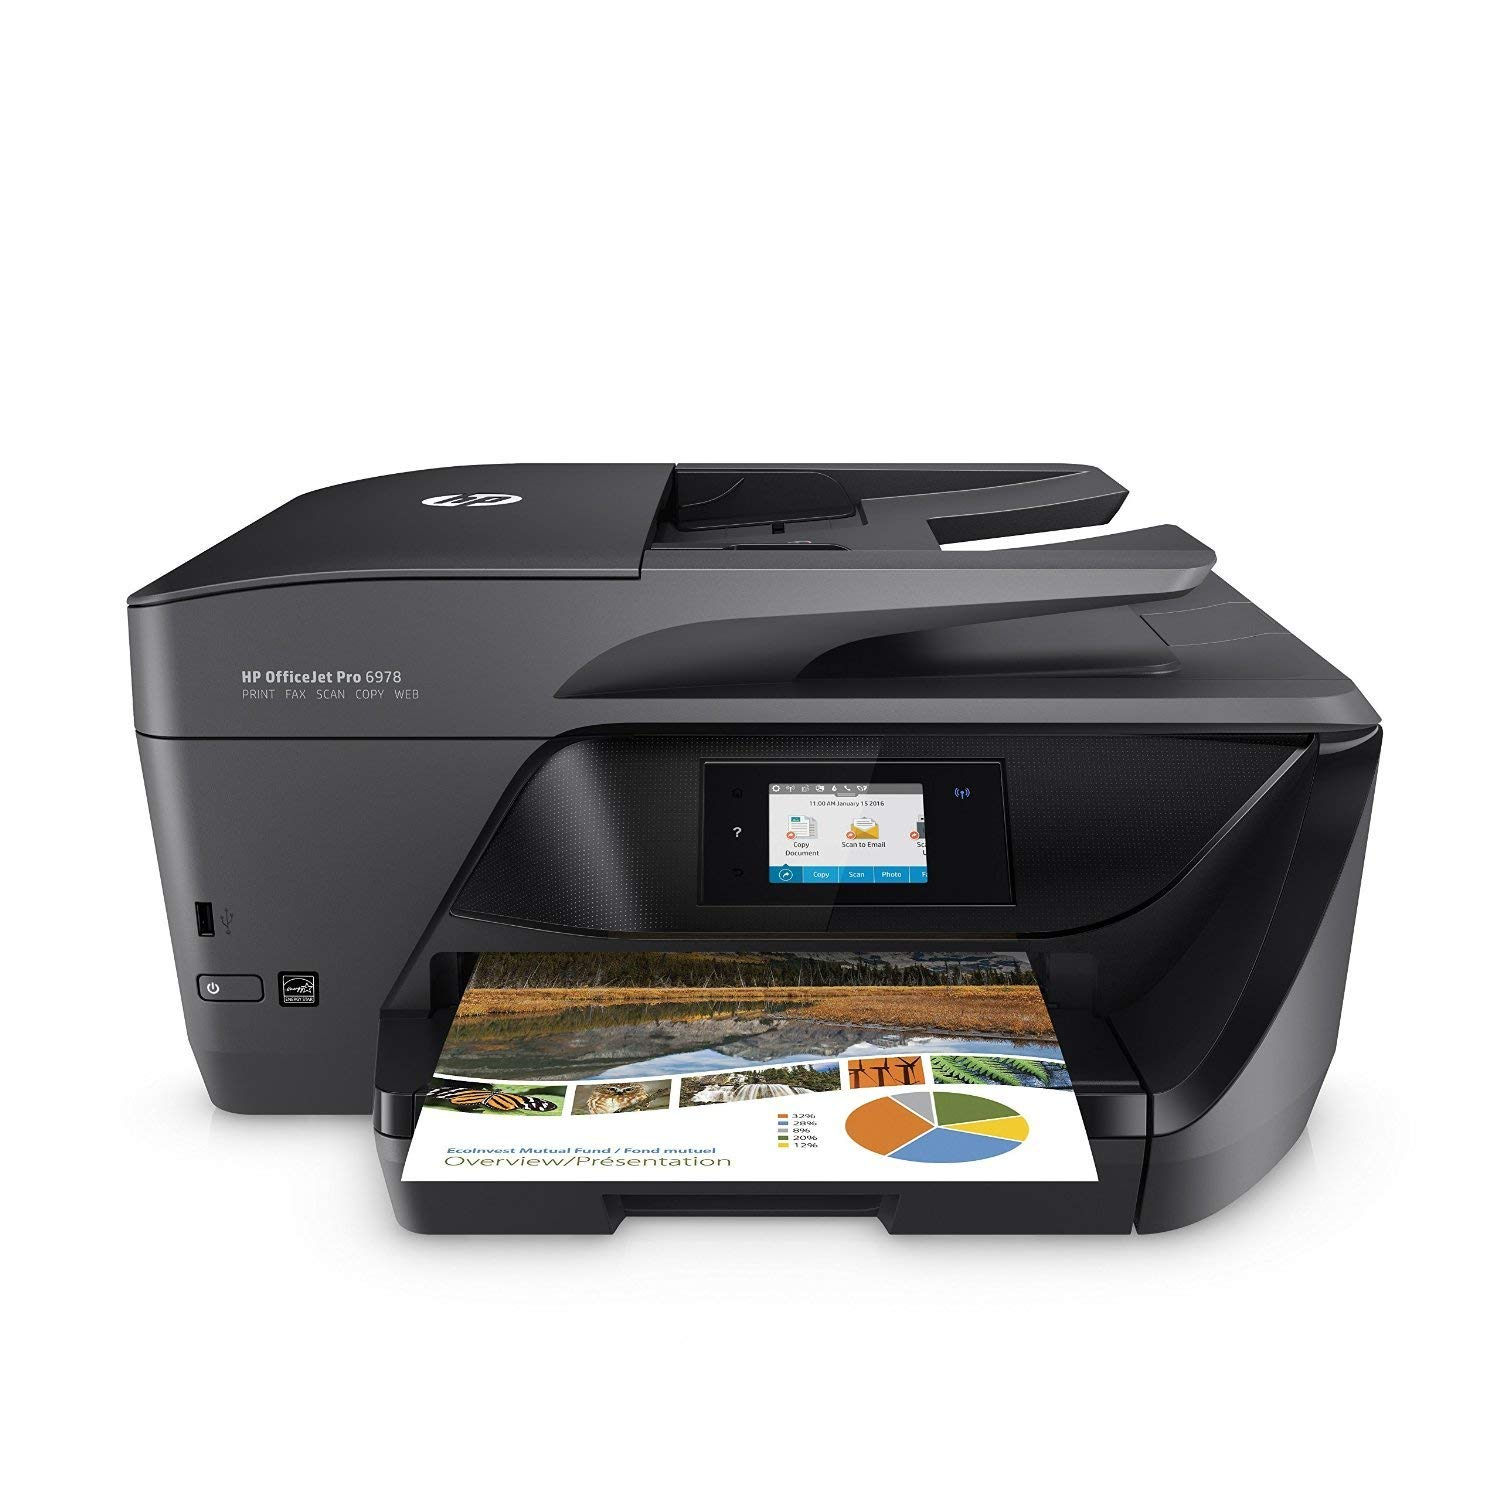 HP OfficeJet Pro 6978 All-in-One Wireless Printer with Mobile Printing, HP Instant Ink & Amazon Dash Replenishment Ready (T0F29A) (Renewed) by HP